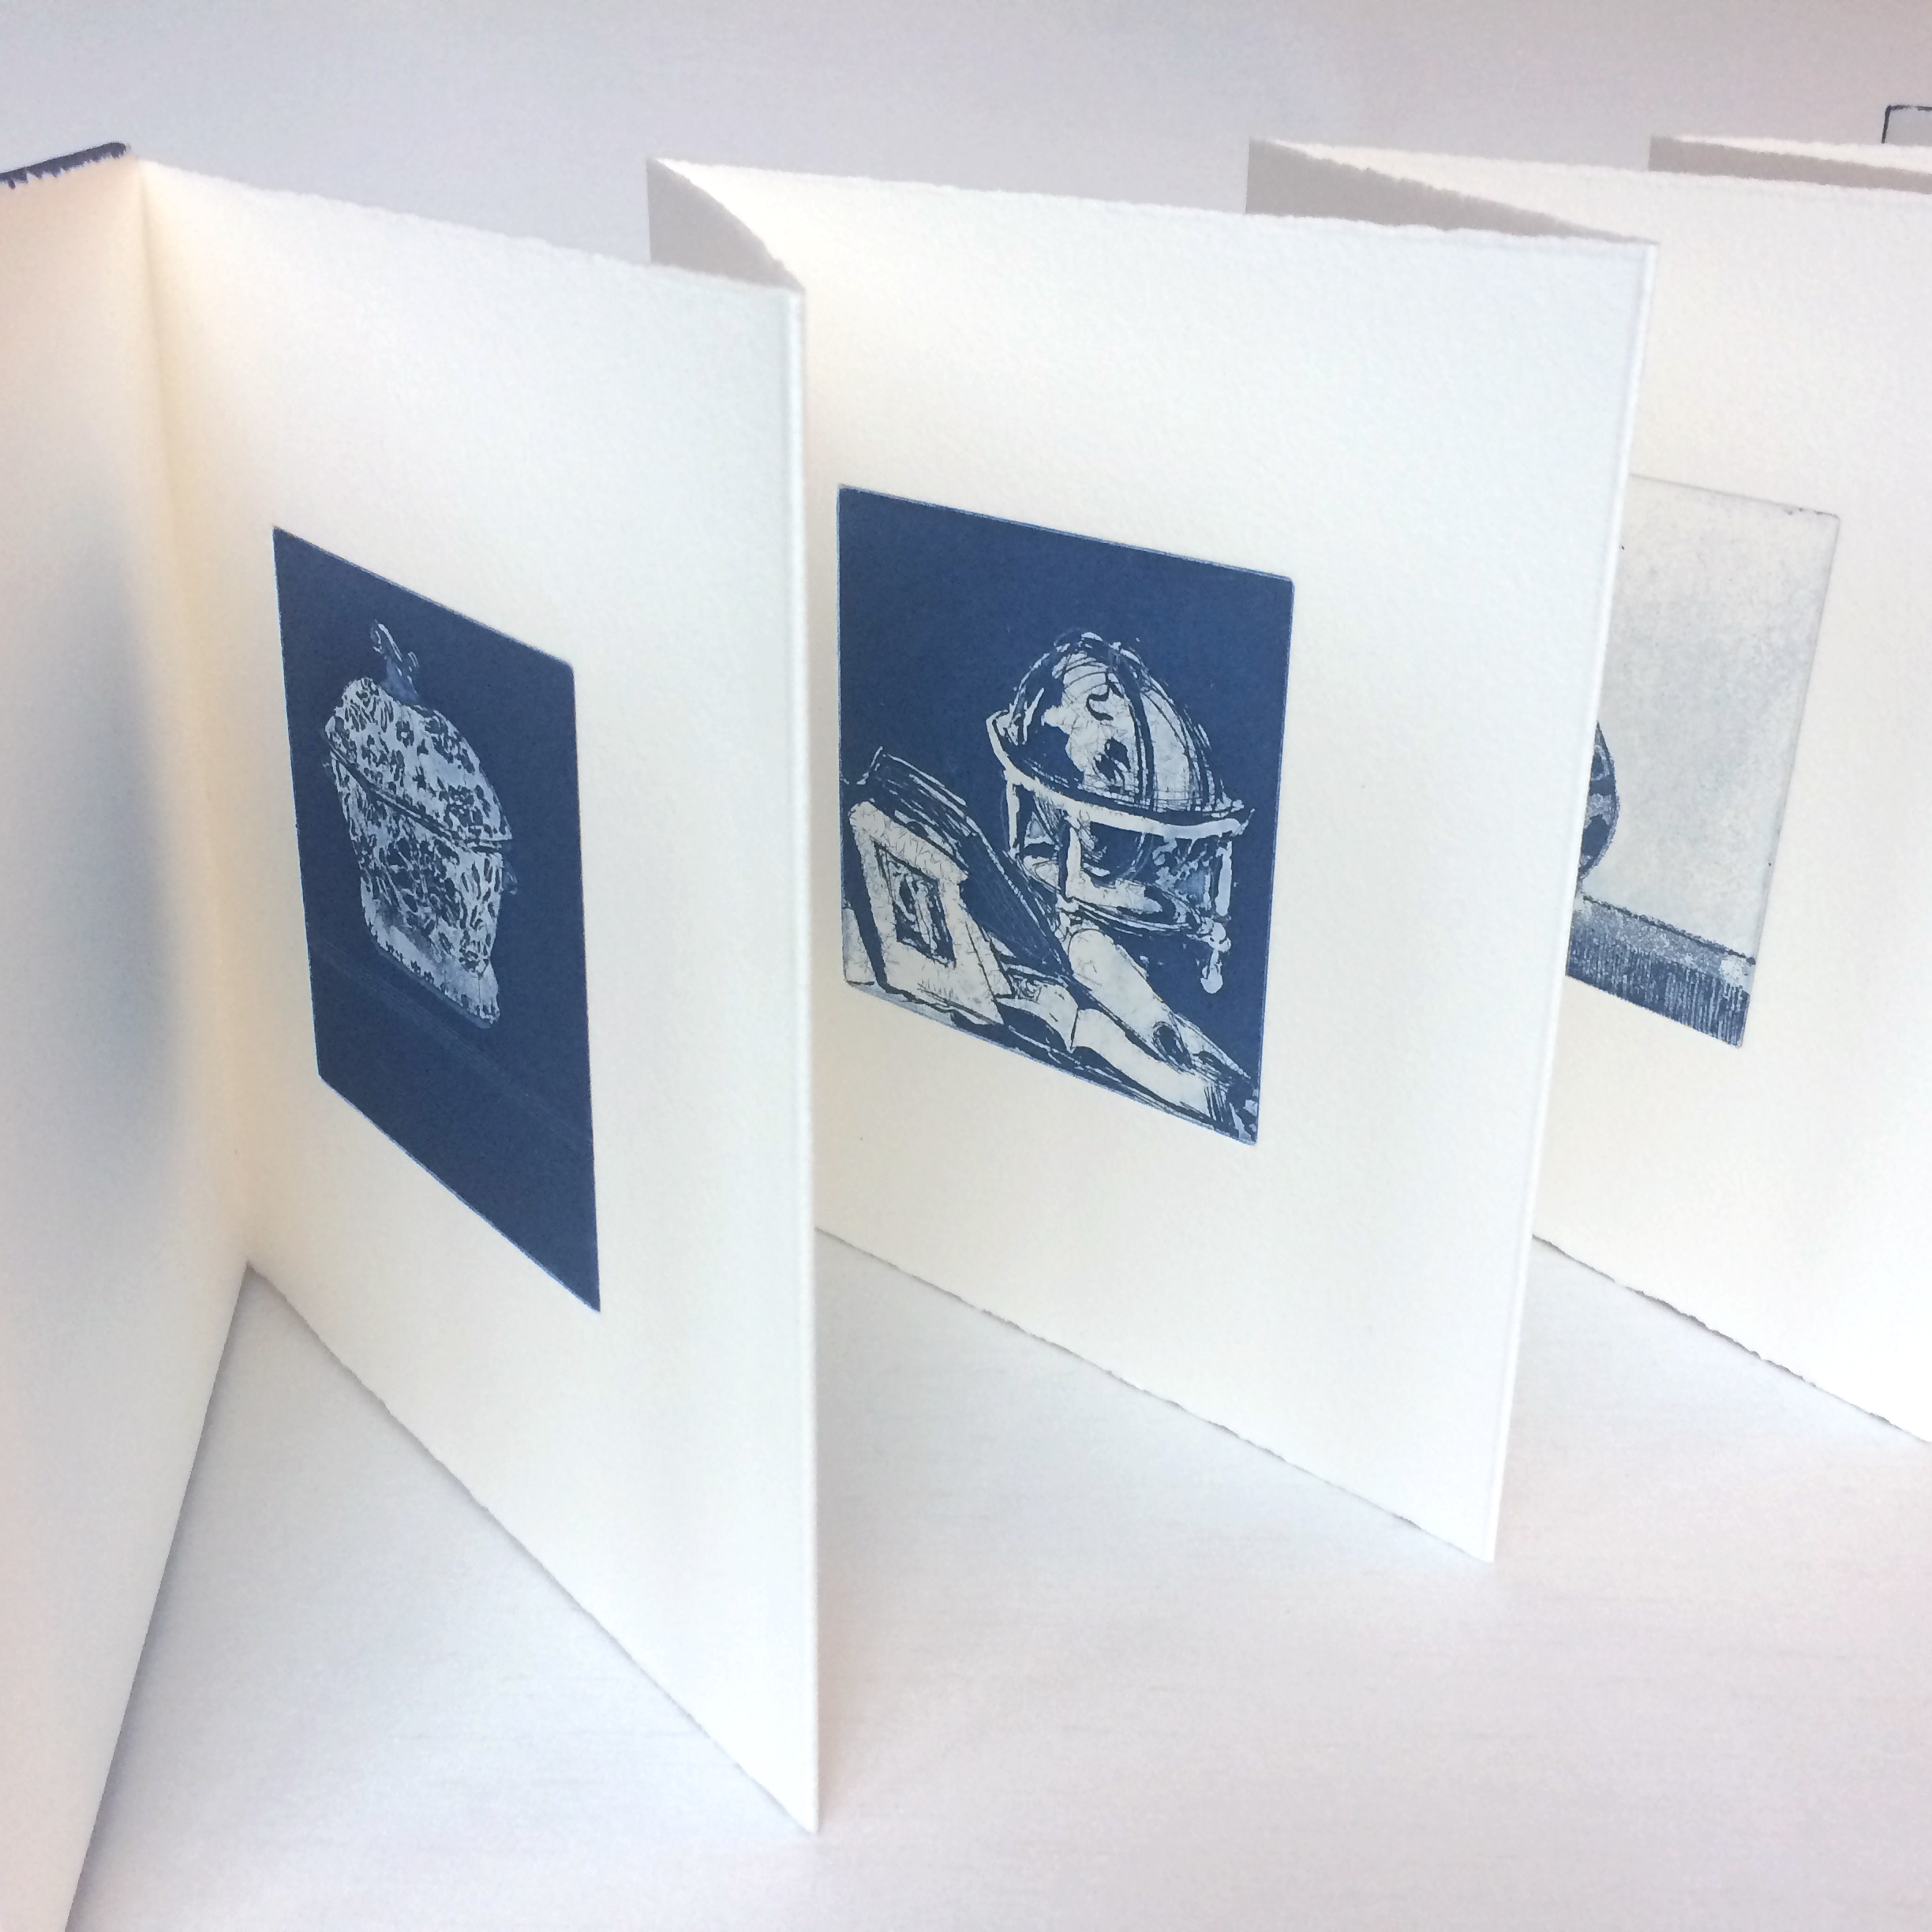 Handmade artist's book with original prints by Ruth O'Donnell